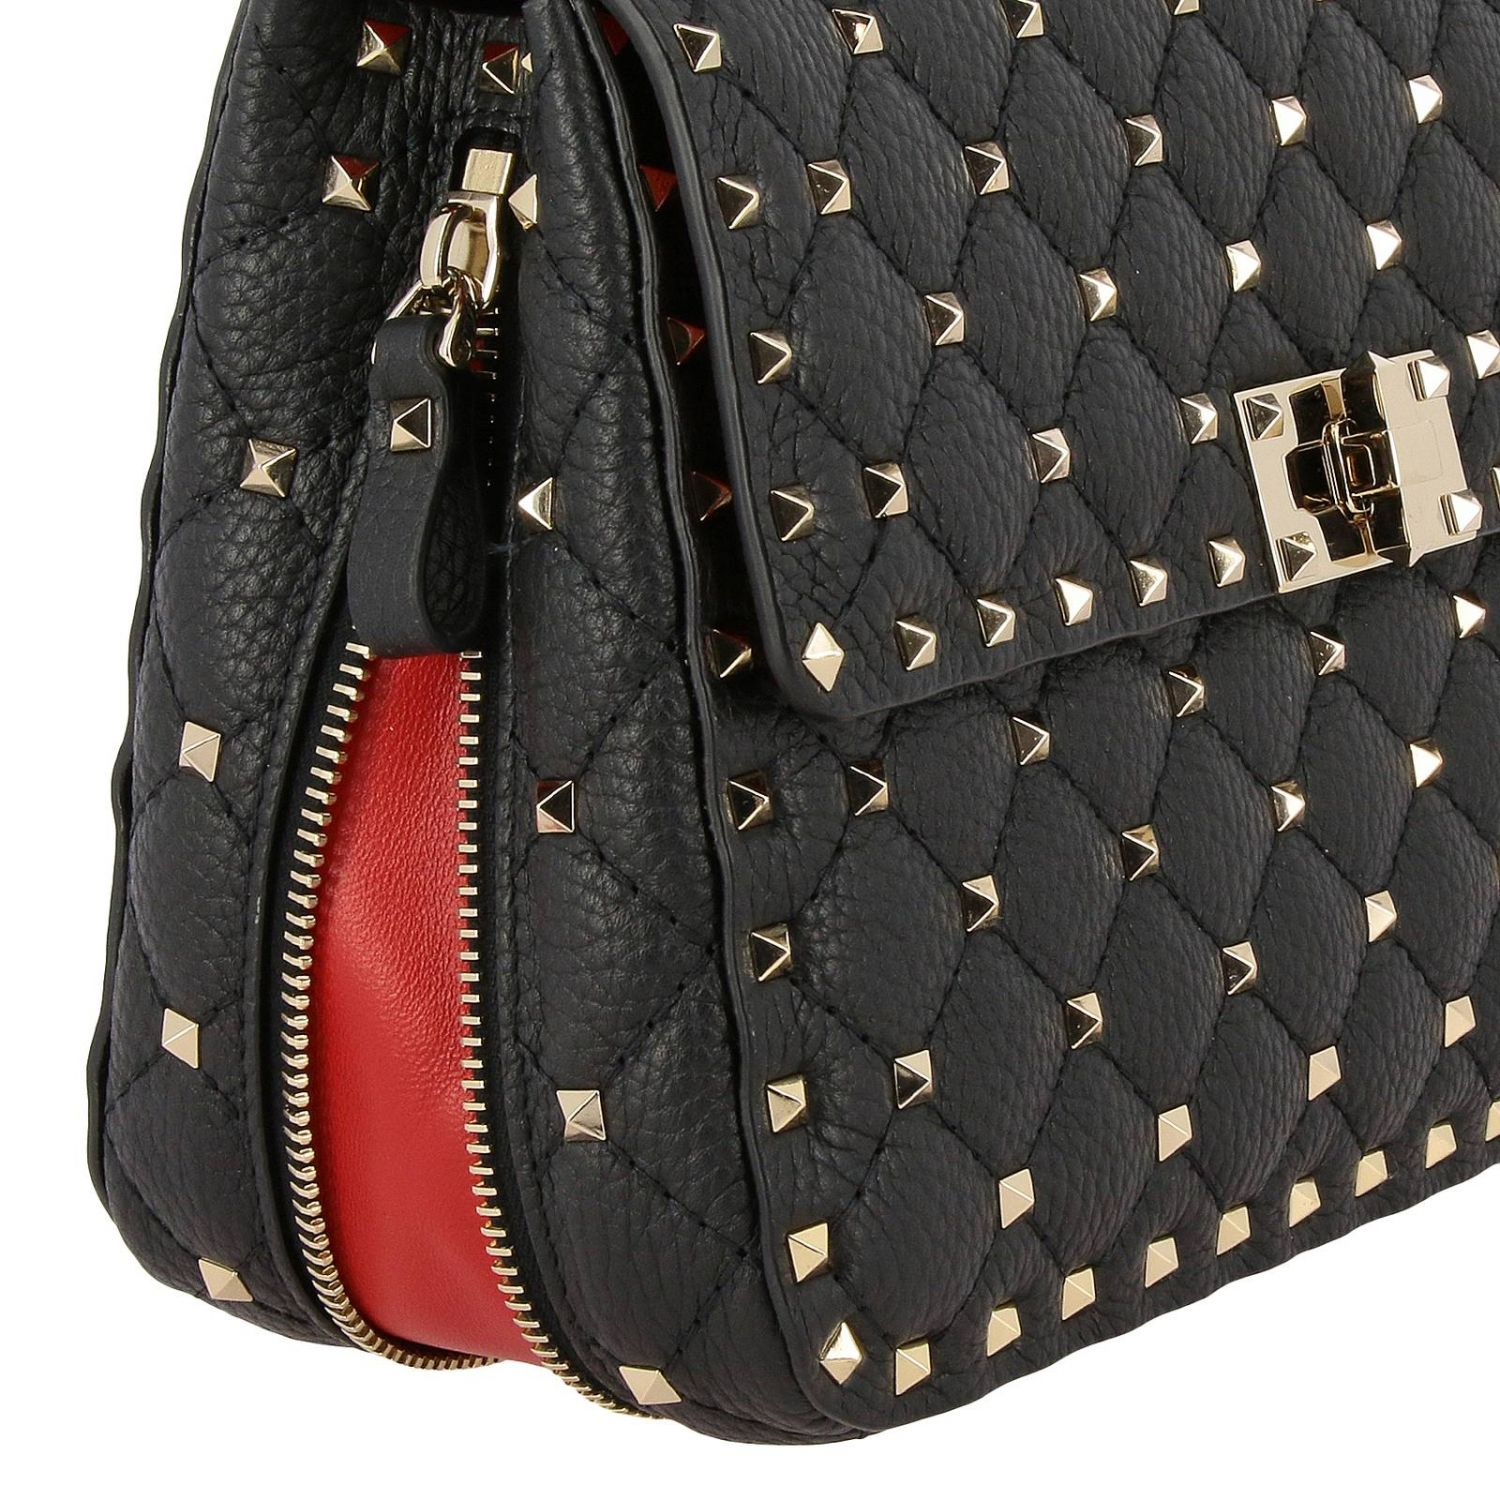 Rockstud Spike quilted leather bag with removable handle and shoulder strap black 4